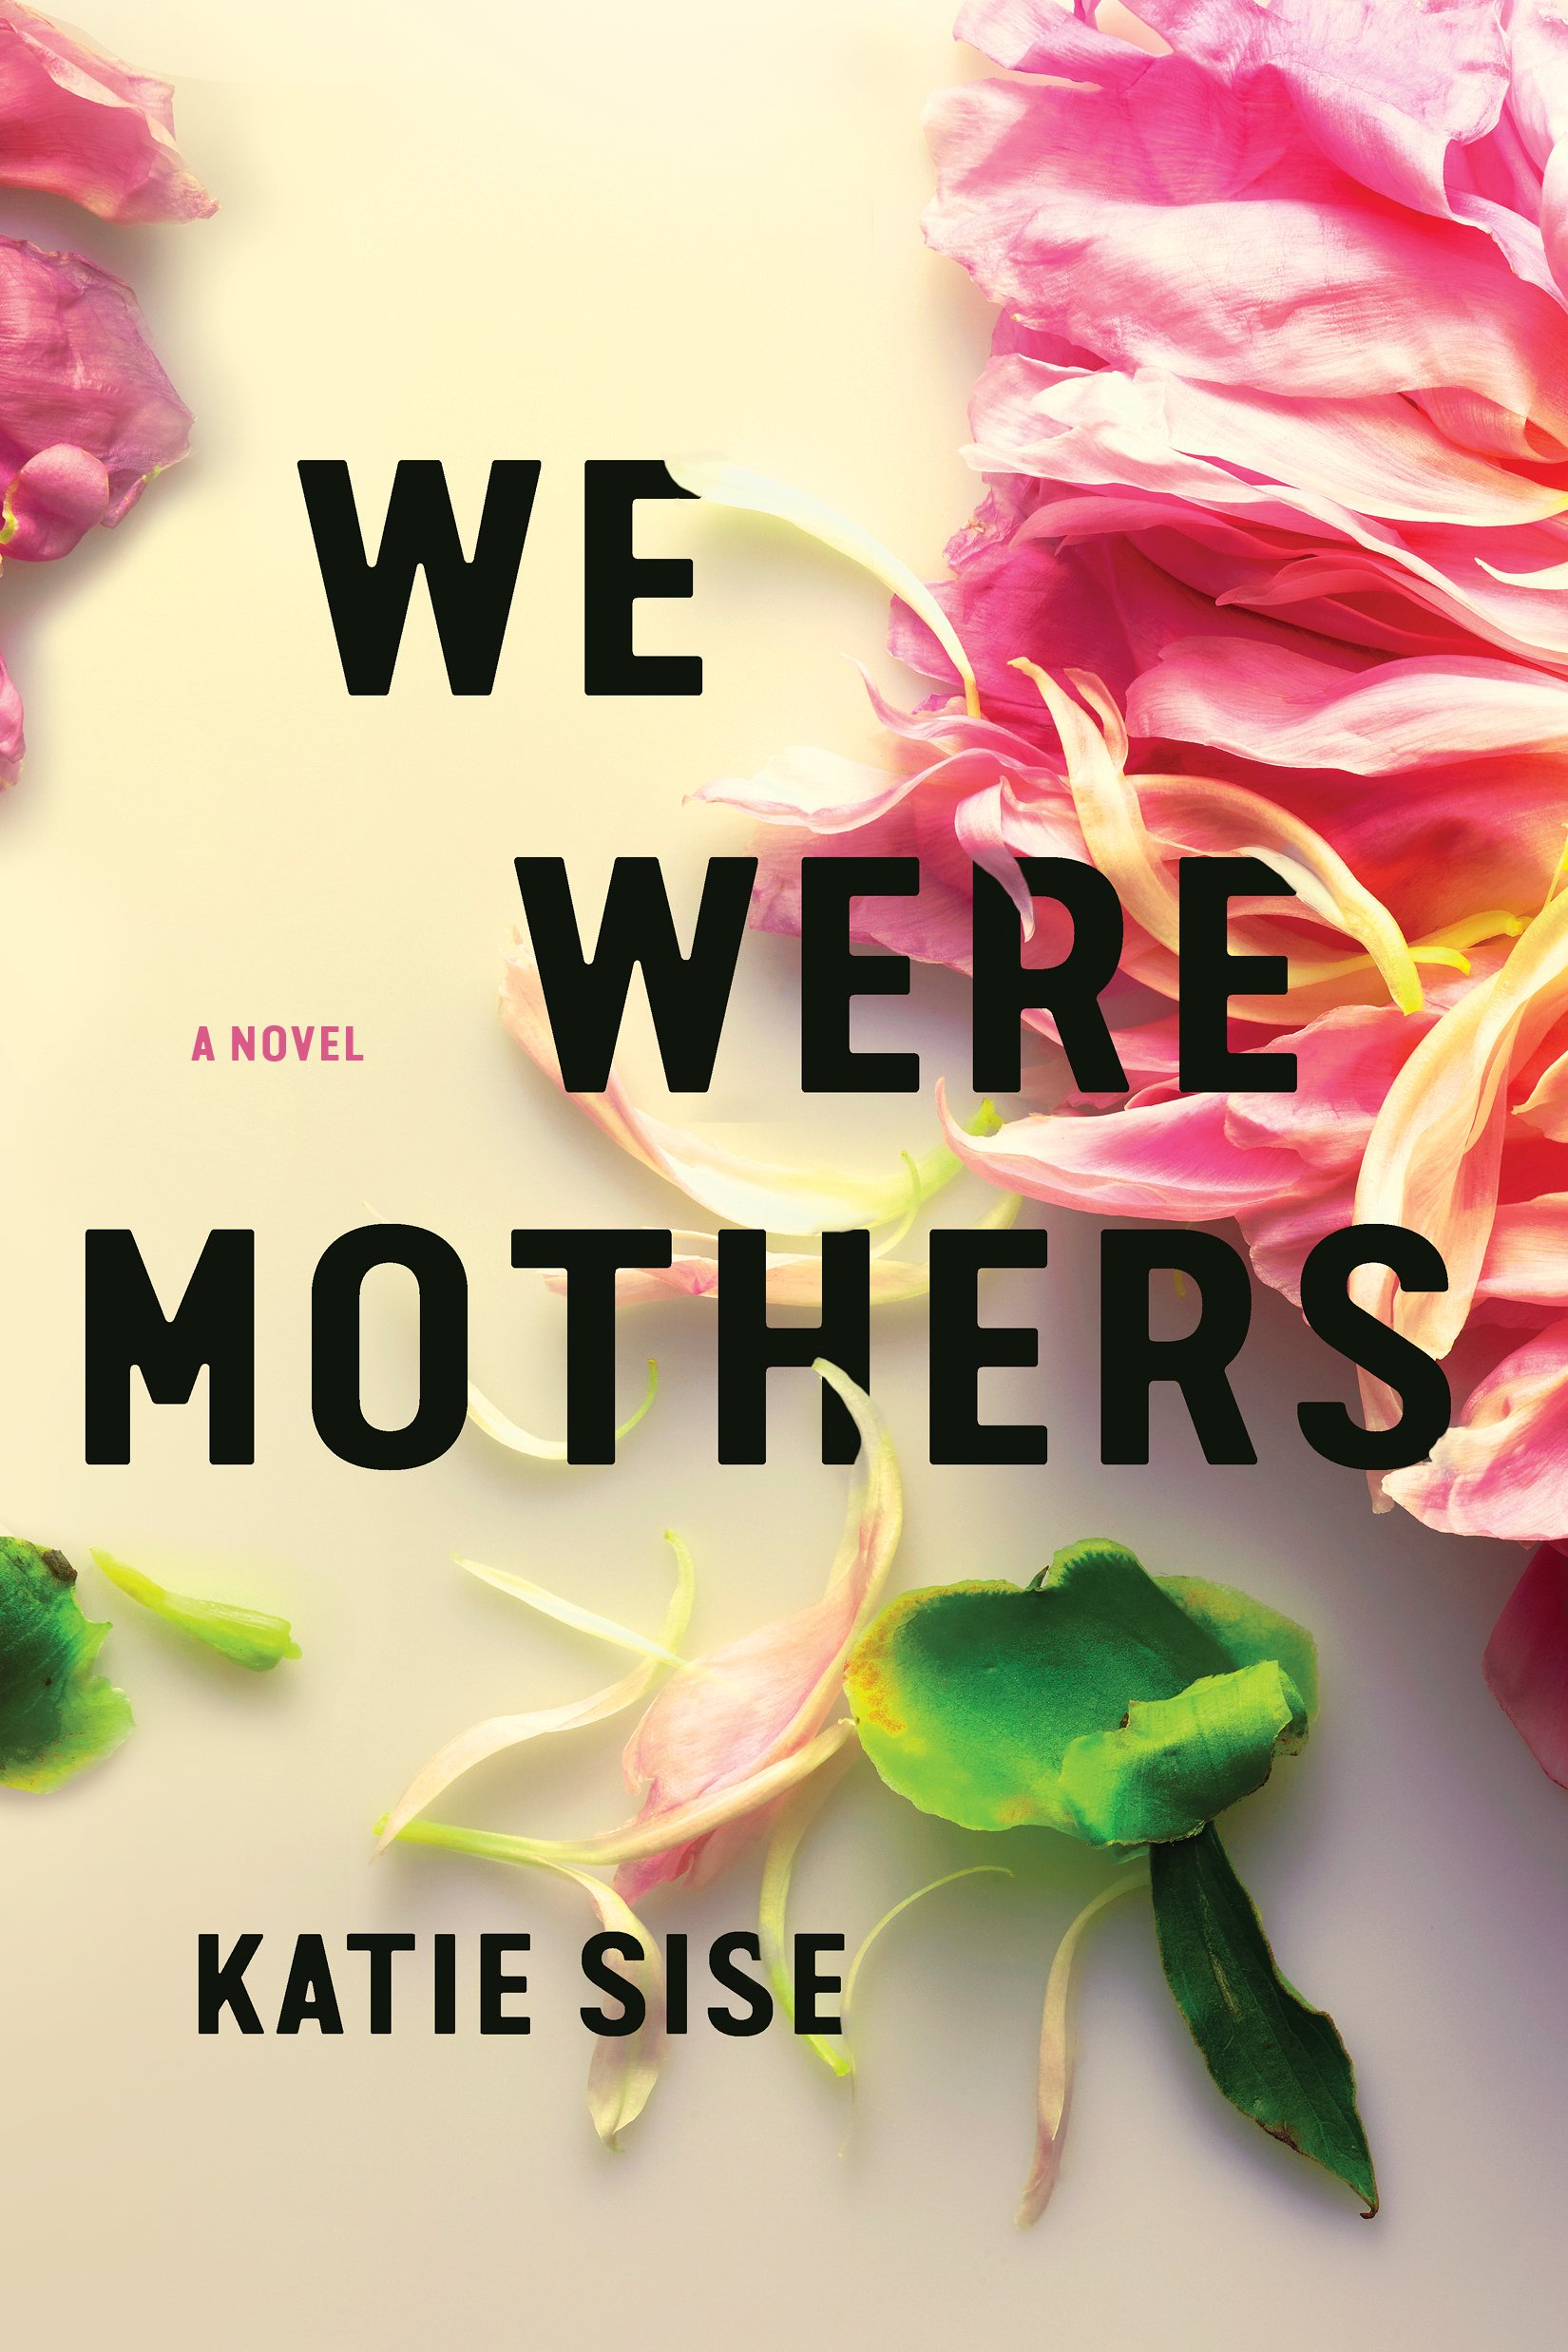 Sise, WE WERE MOTHERS, US cover.jpg